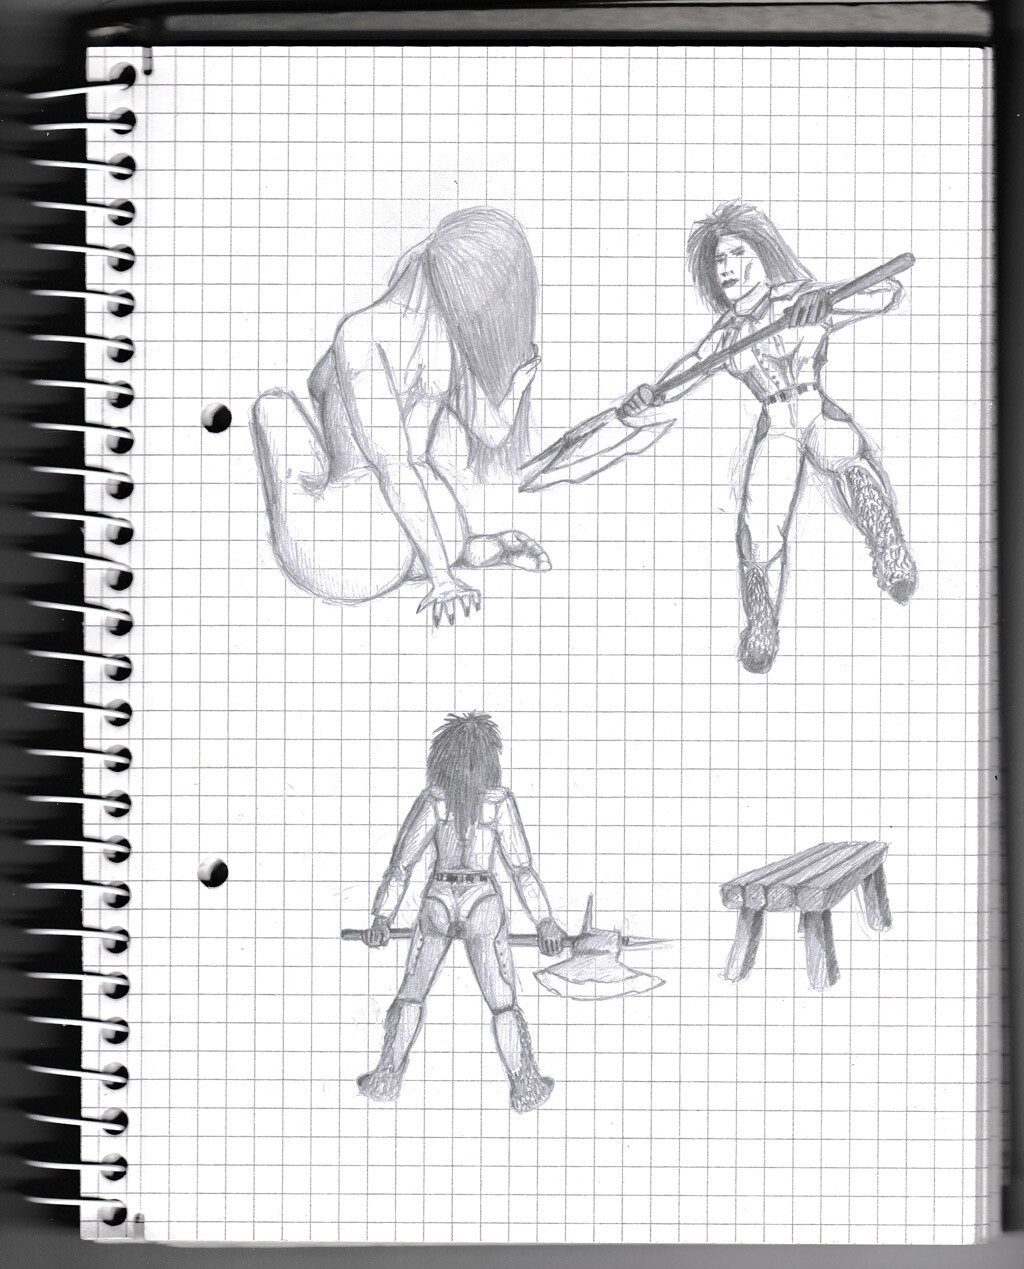 character, sketch, pencil, lady, warrior,